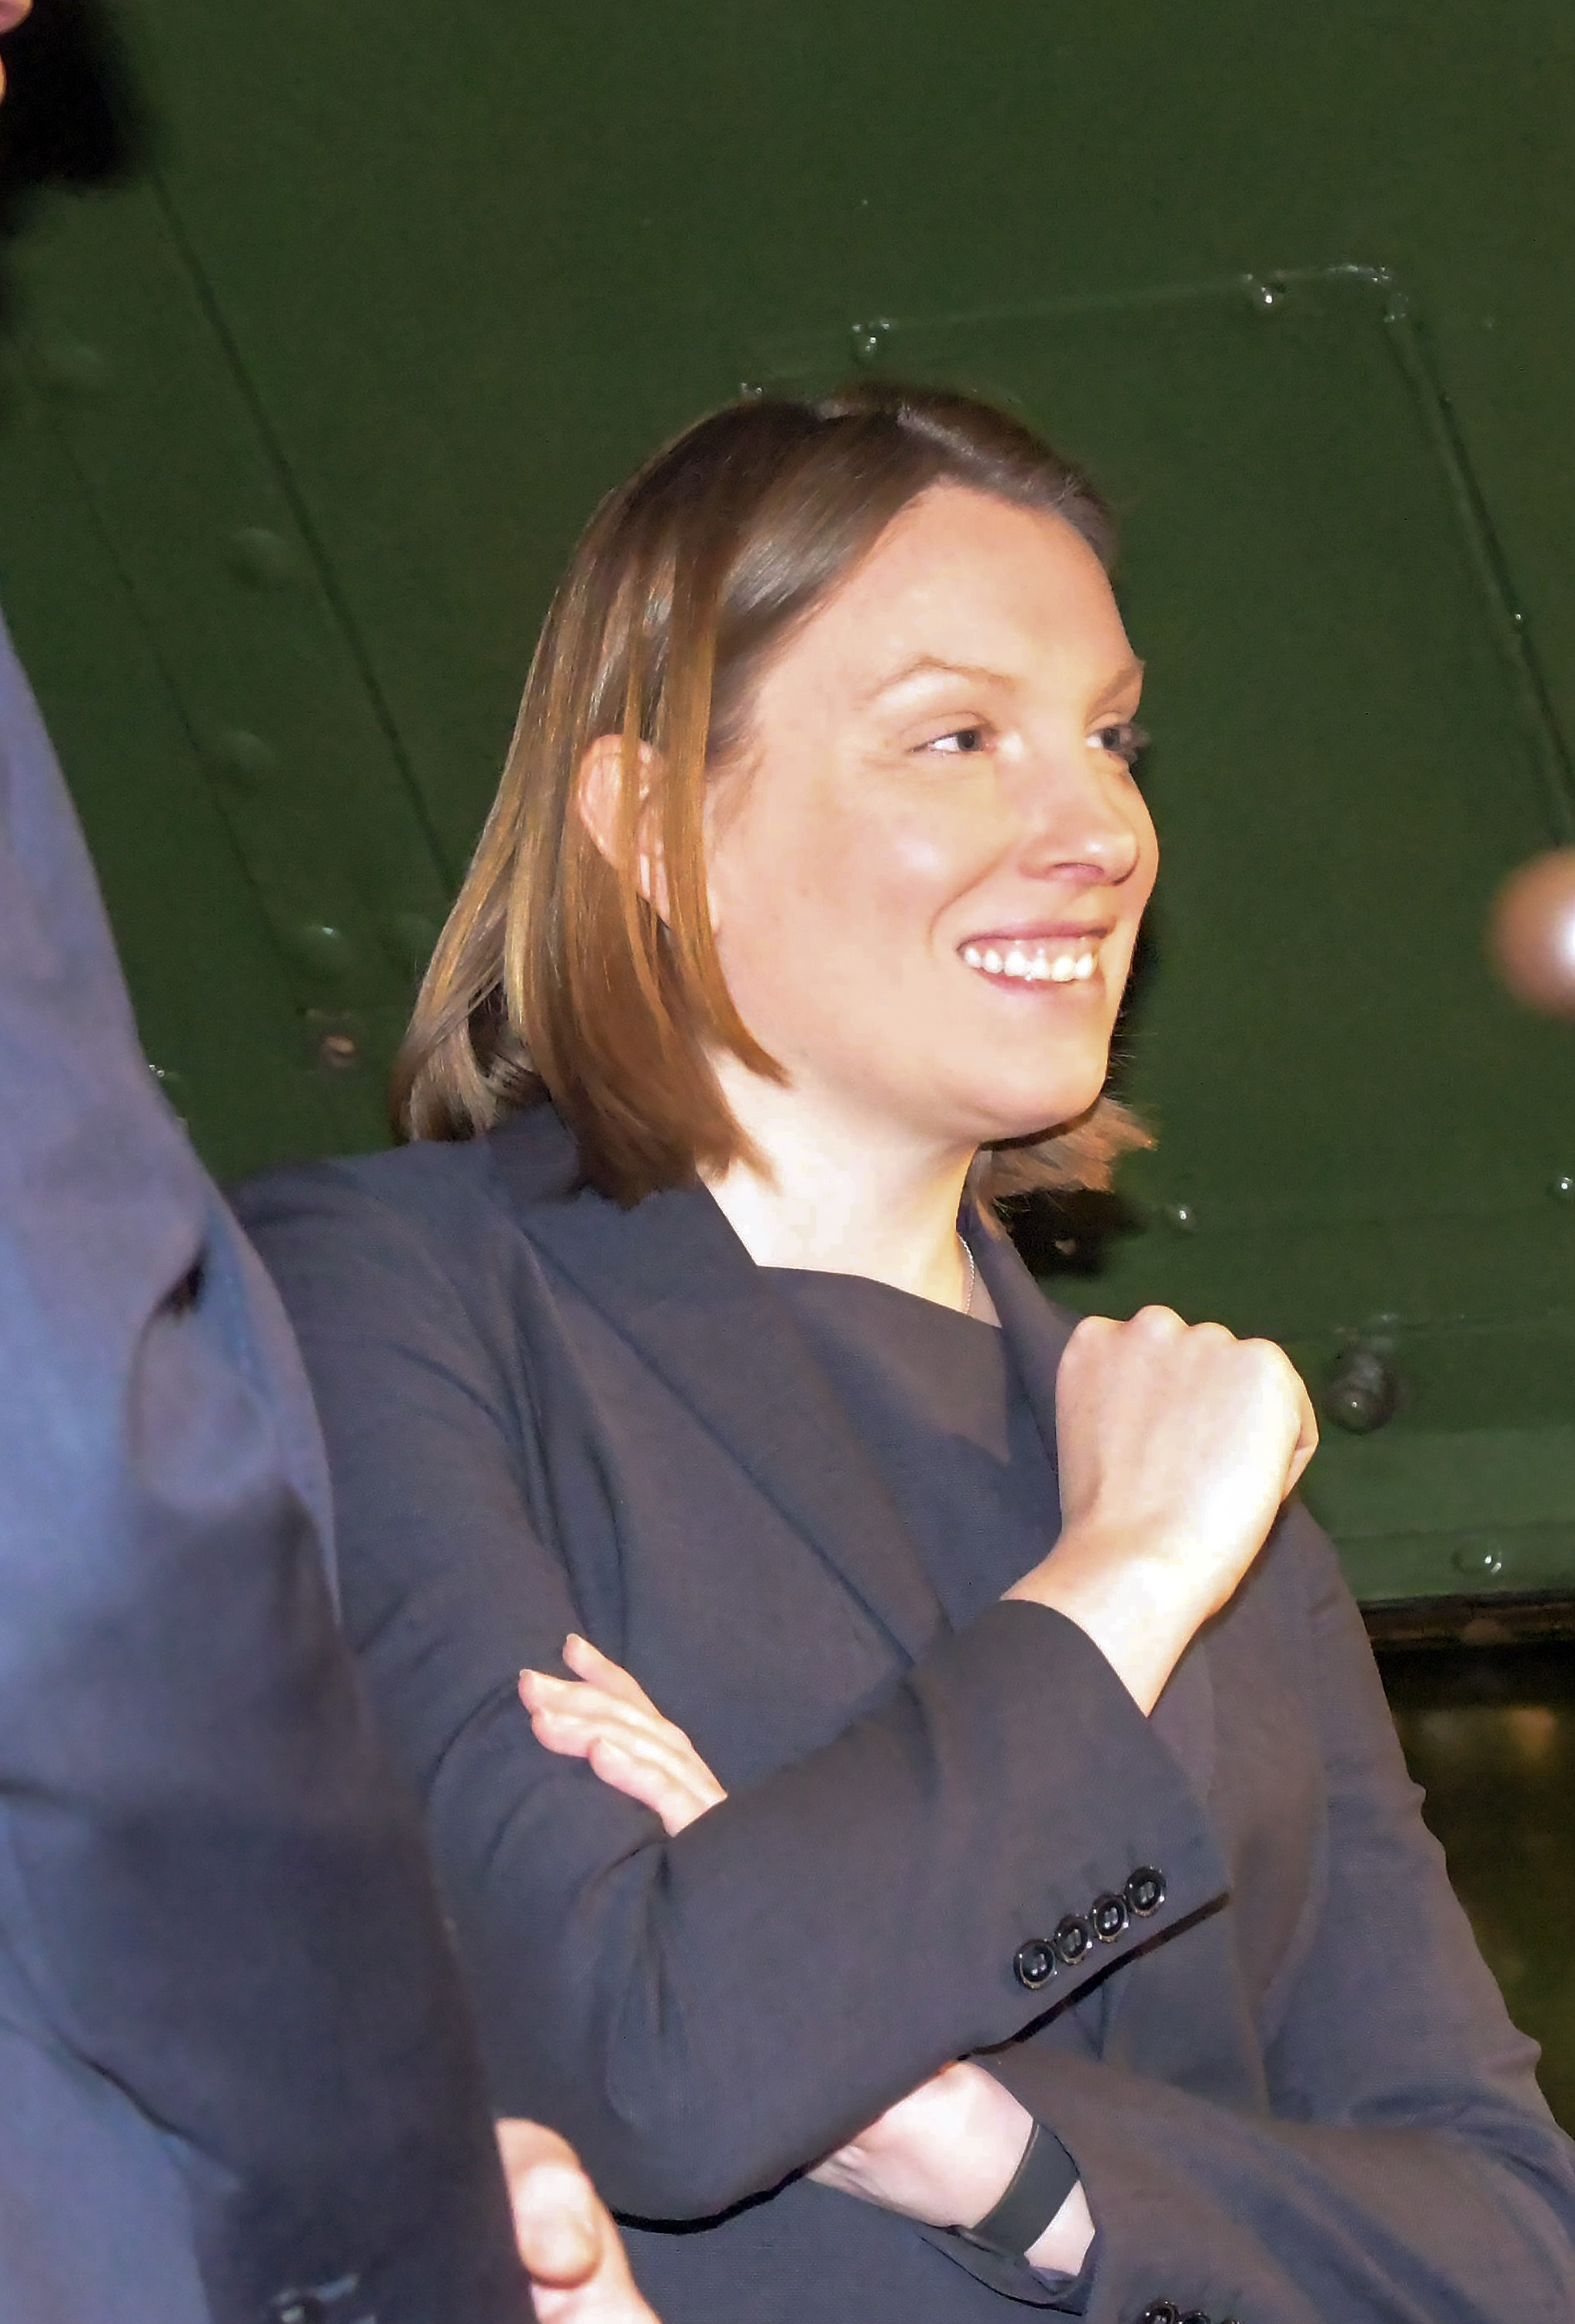 Snapped: Heritage and Tourism Minister Tracey Crouch at STEAM